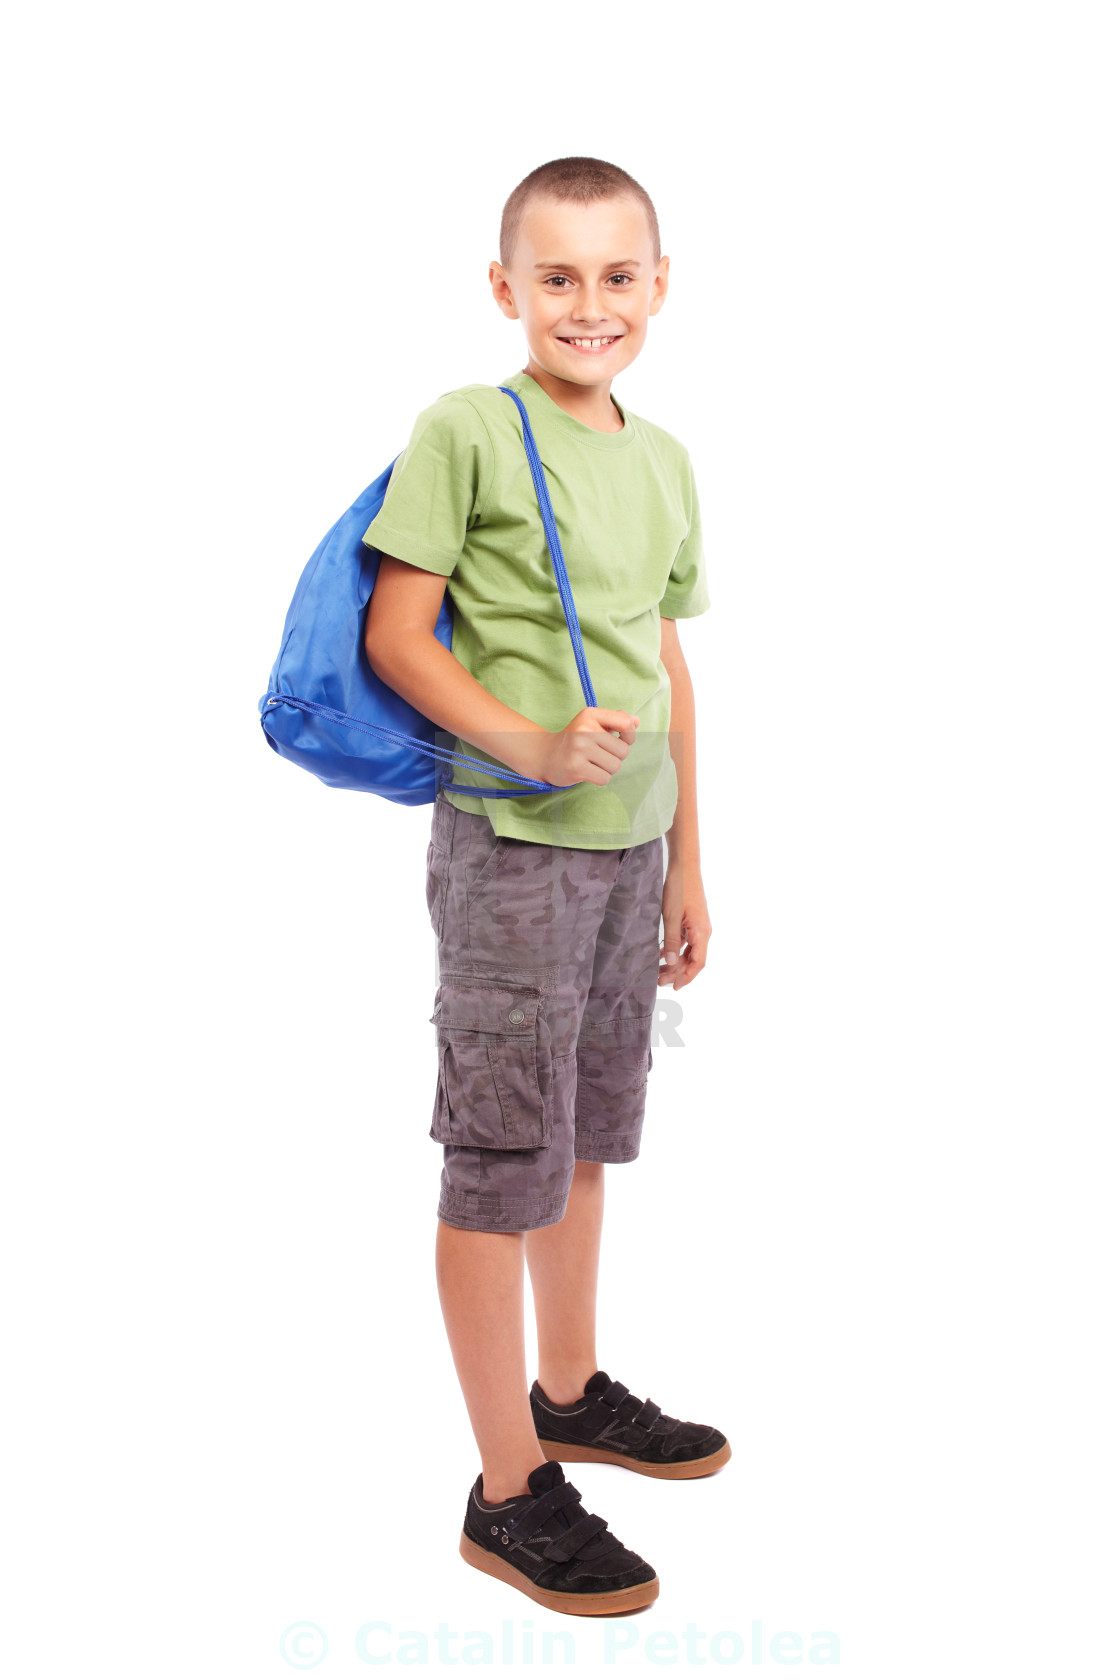 c2d901b6525e Sporty child with backpack isolated on white - License, download or ...